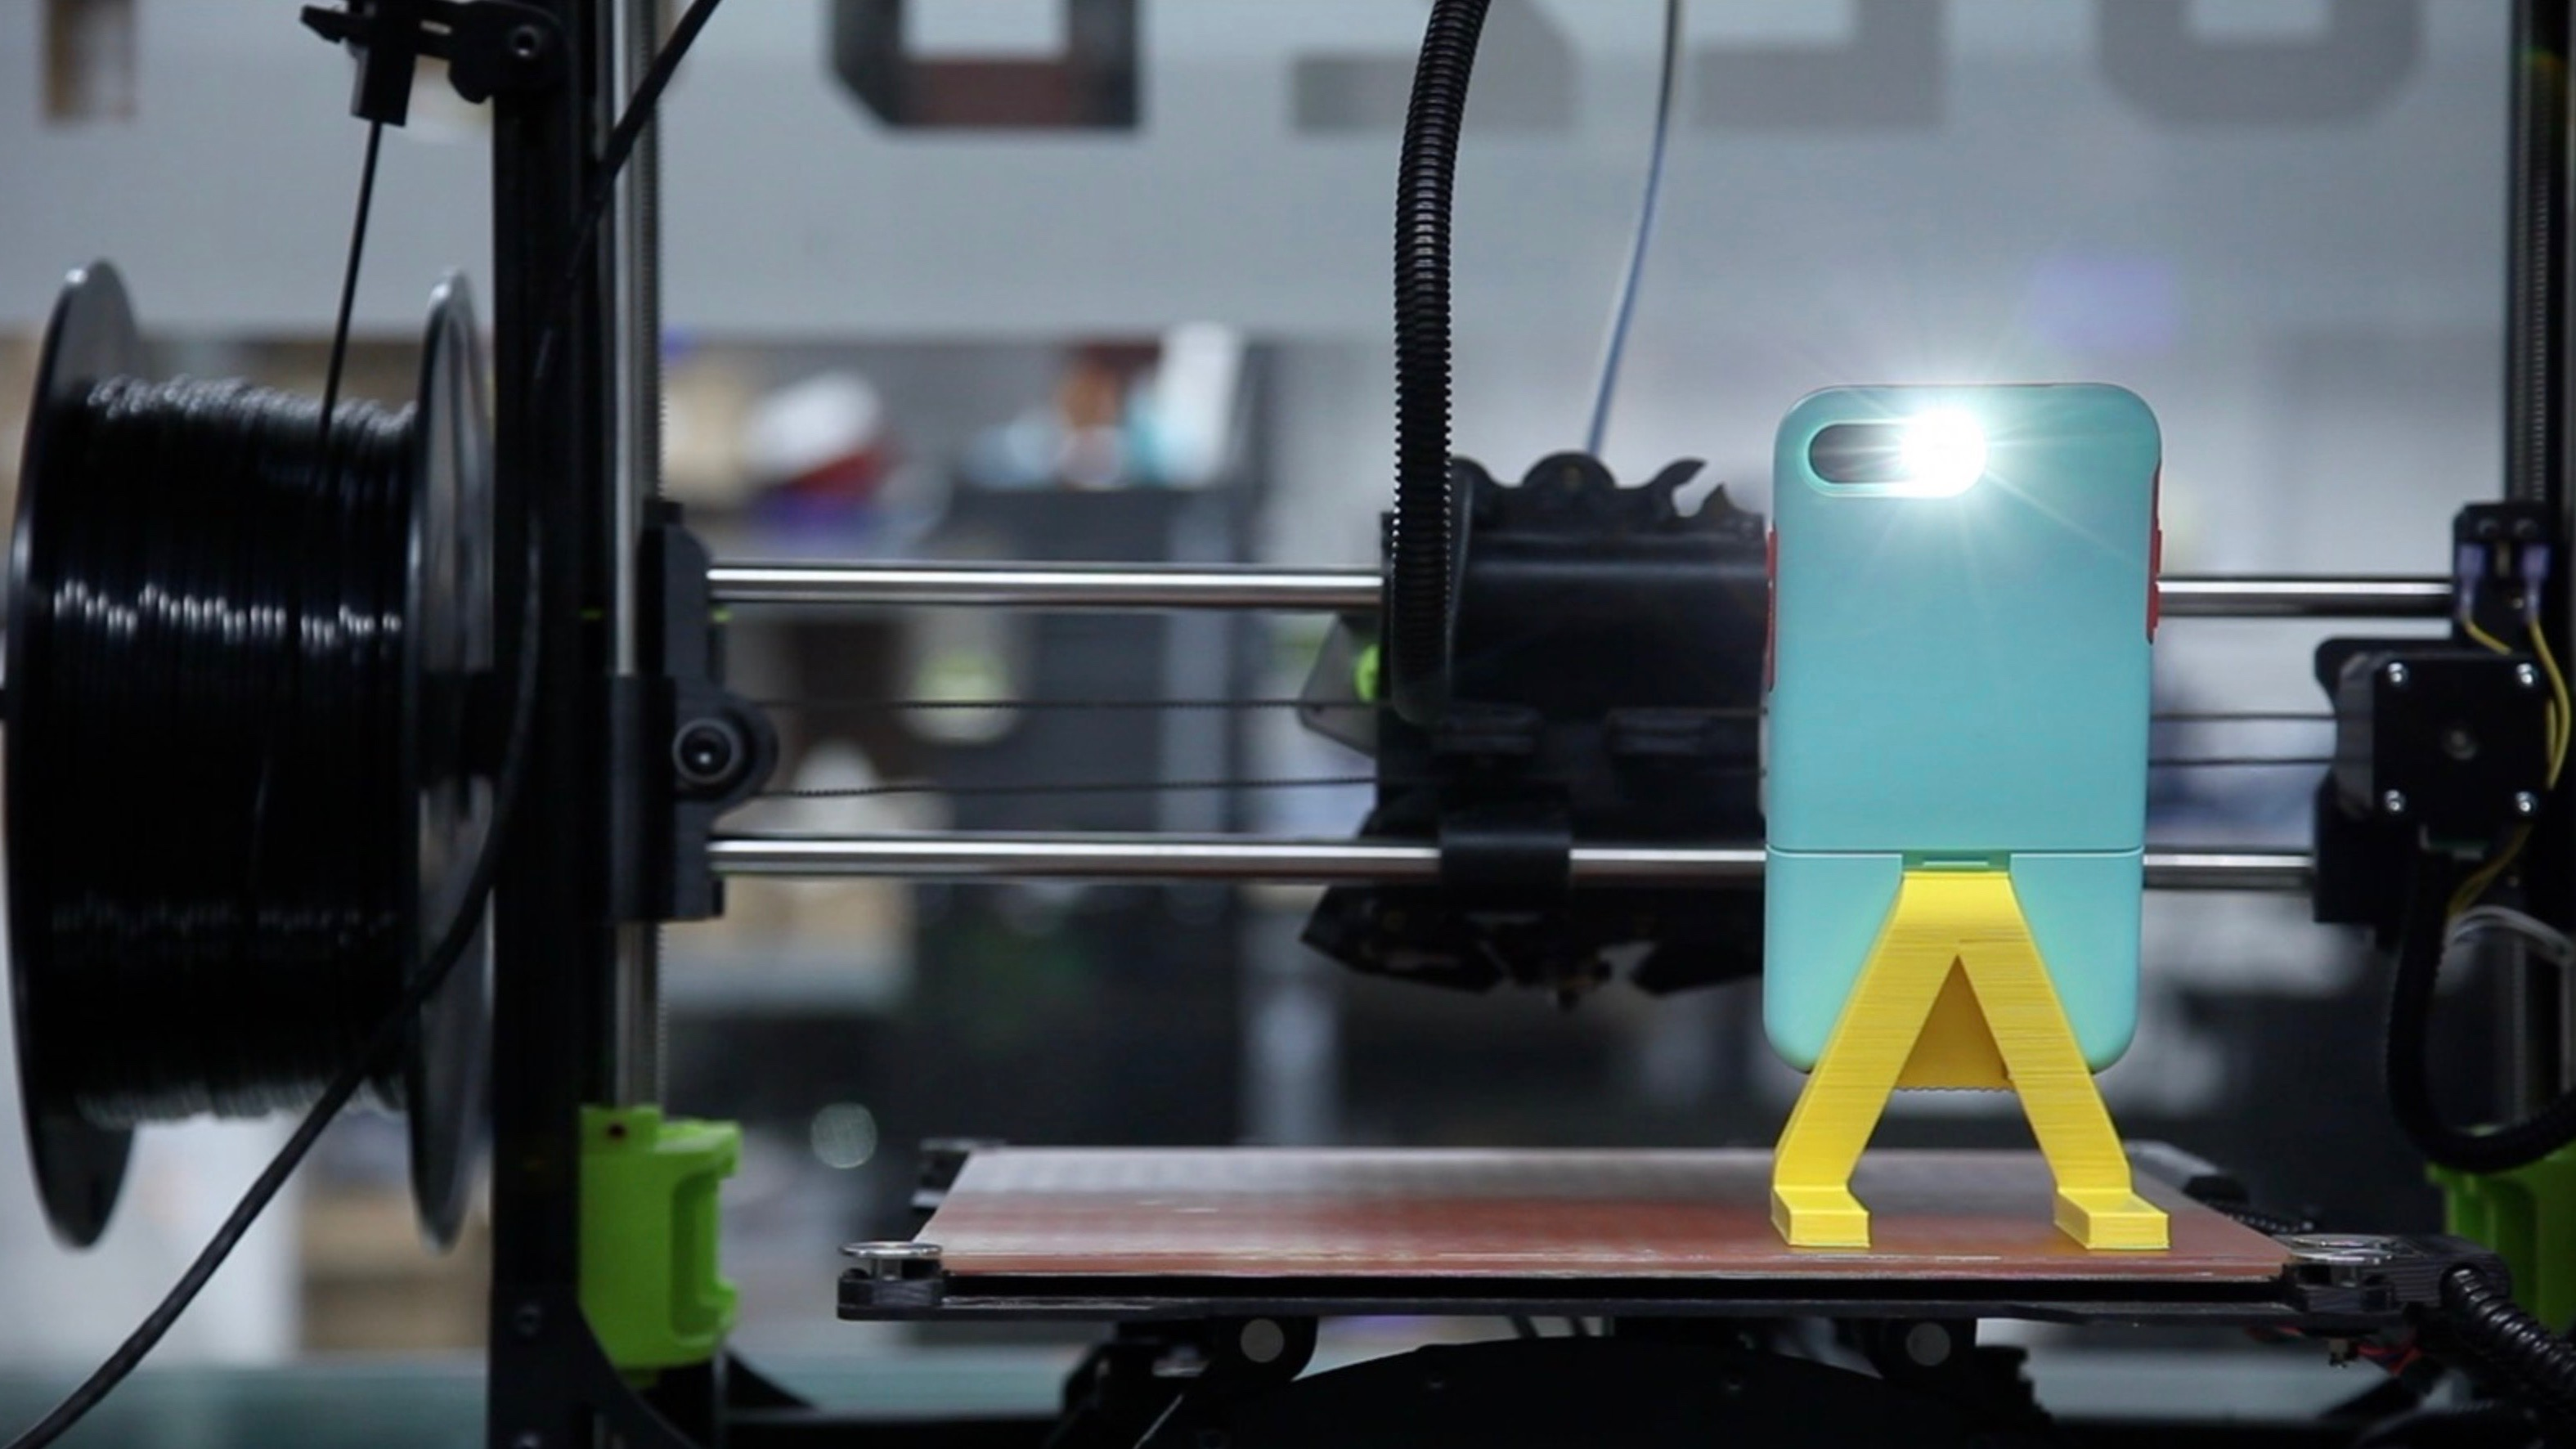 Otterbox now lets anyone 3D print accessories for uniVERSE case system